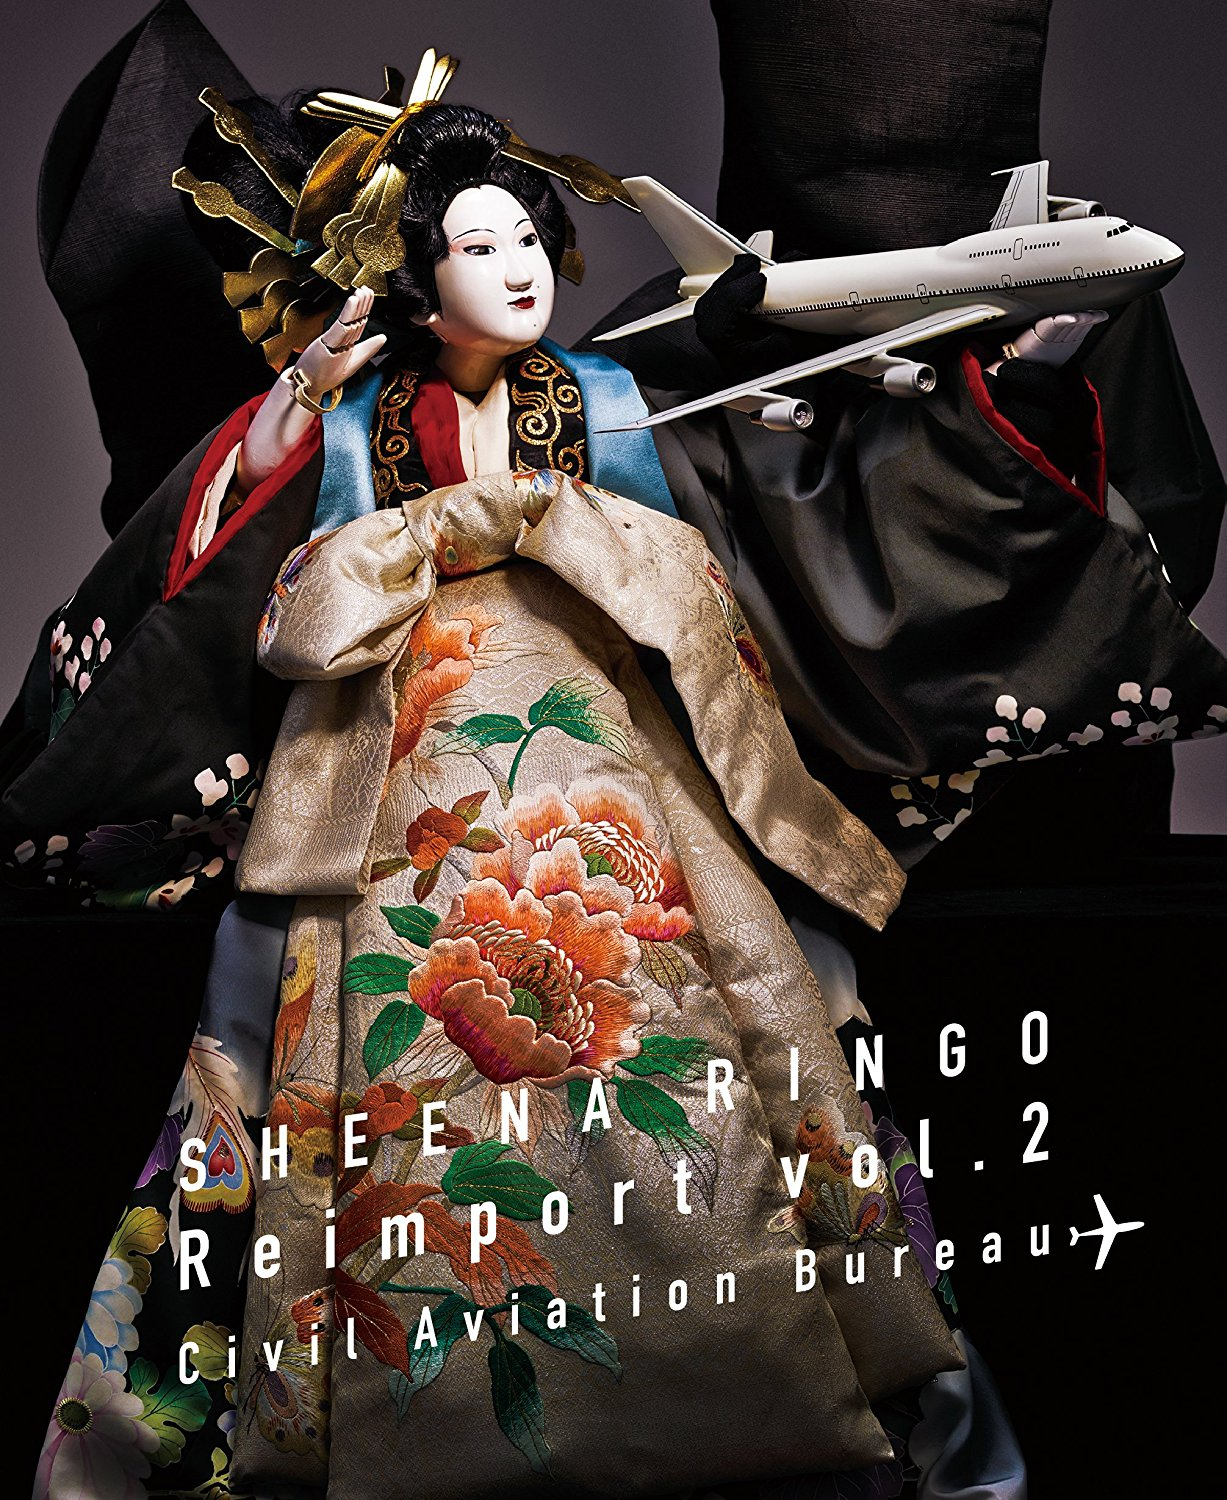 Ringo Shiina – Reimport Vol.2